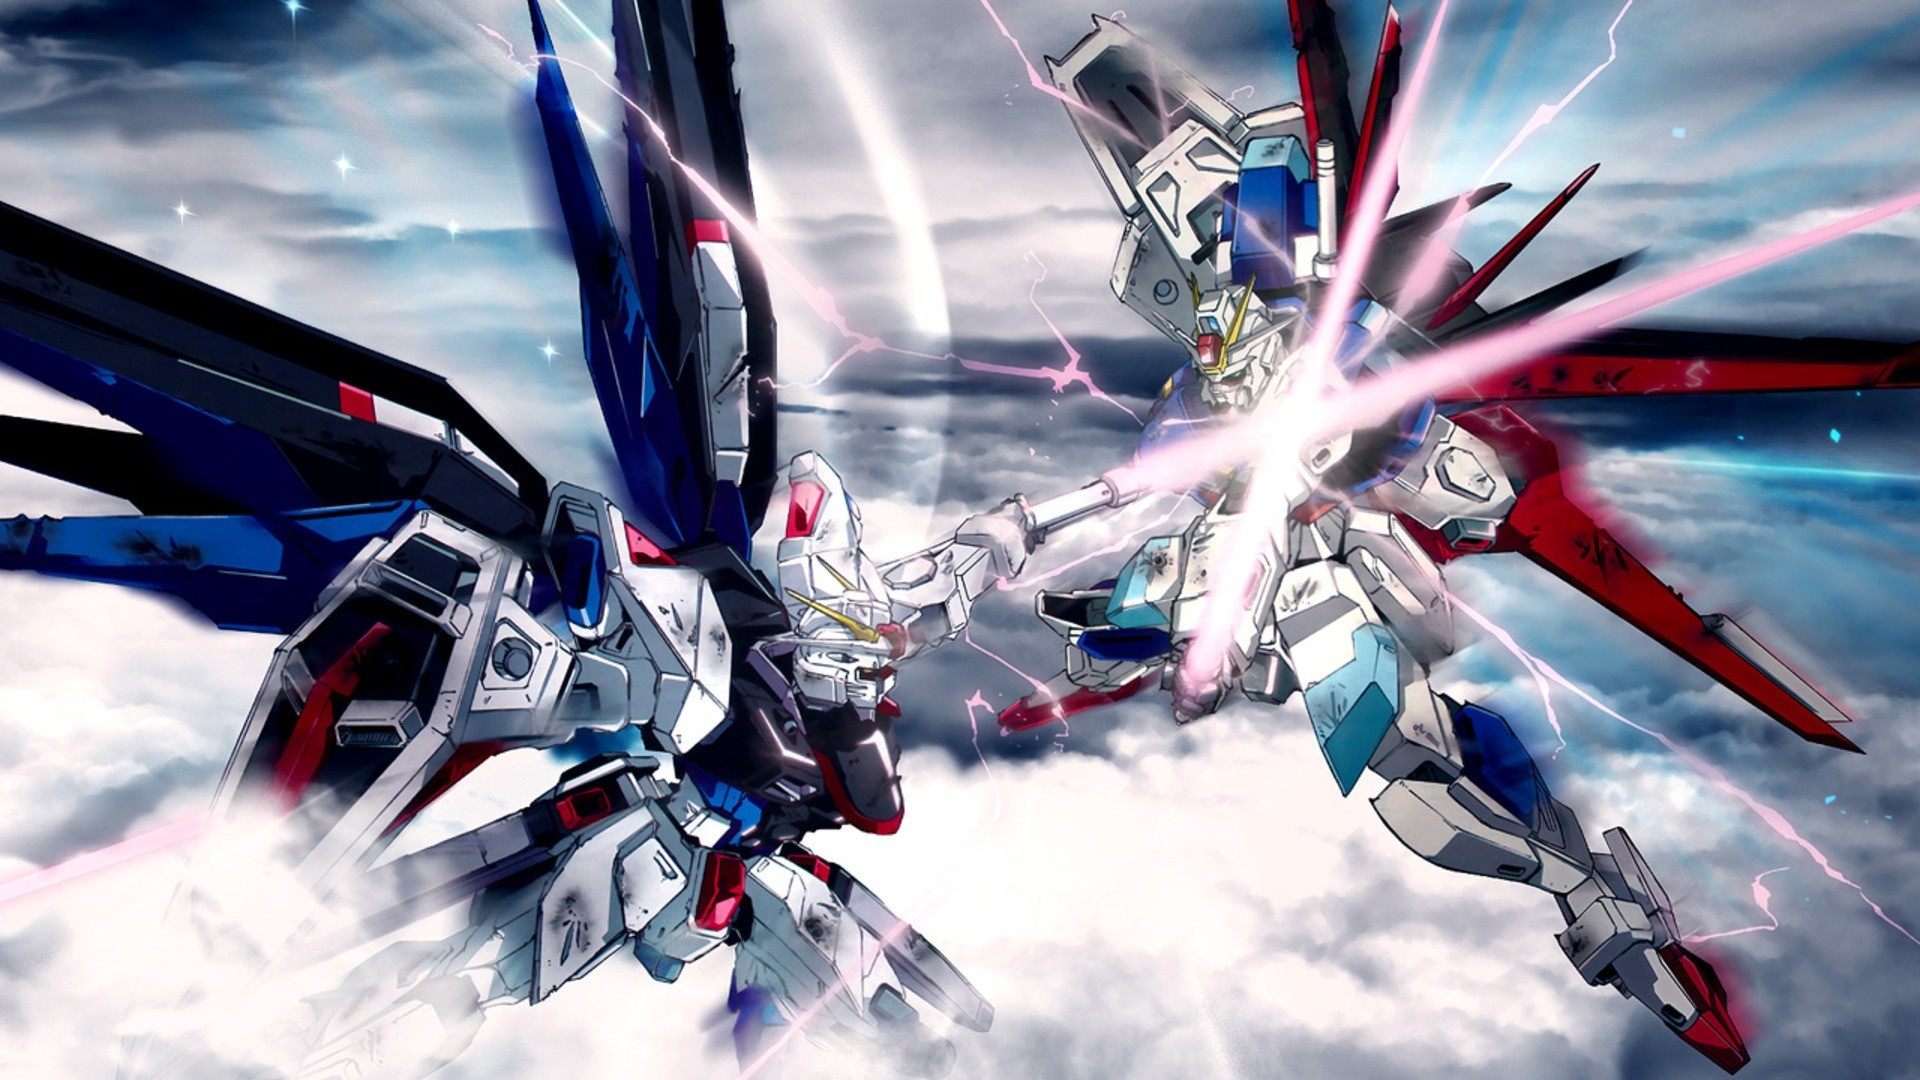 1920x1080 - Mobile Suit Gundam Seed Destiny Wallpapers 14